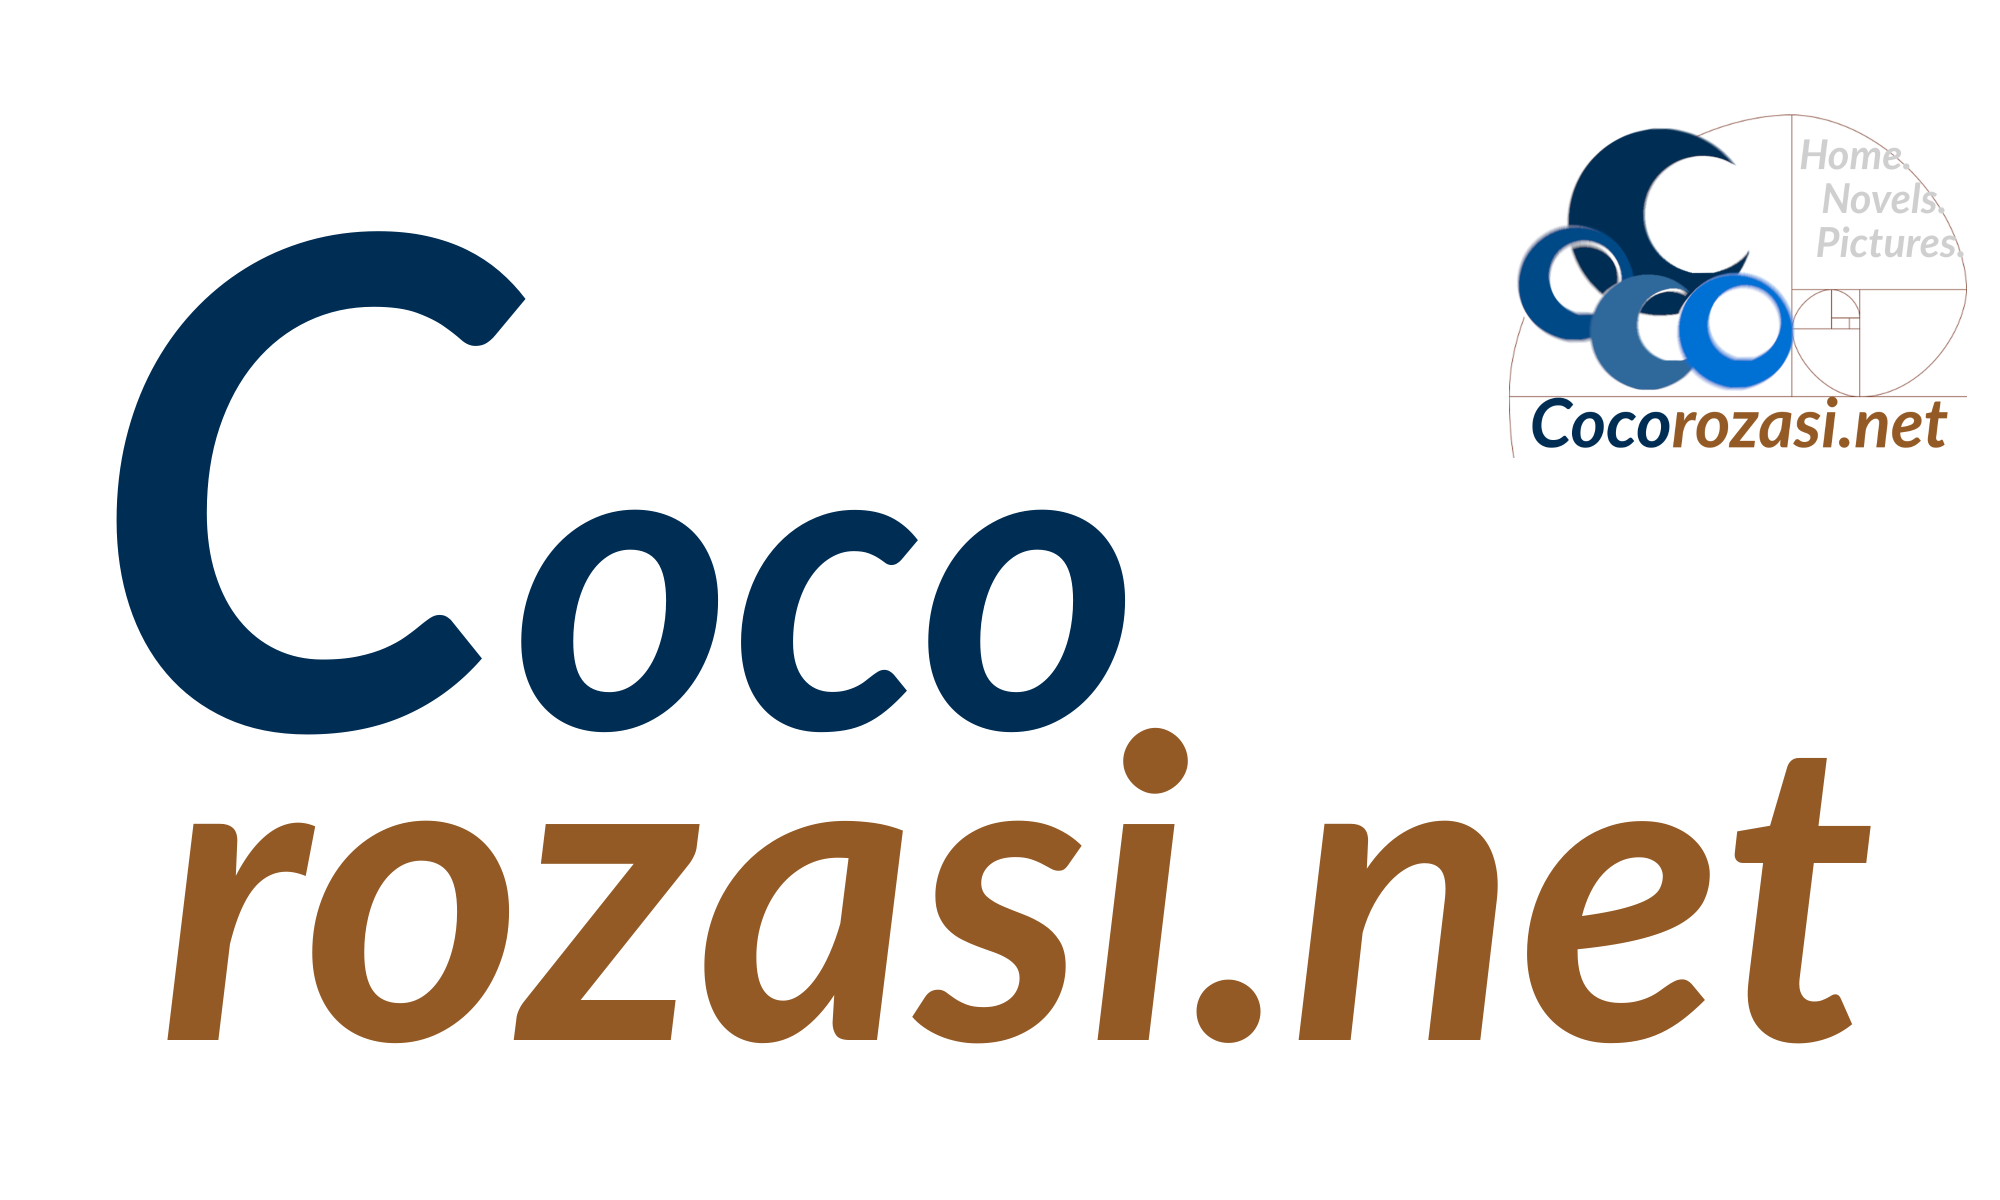 Cocorozasi.net | Contact us.